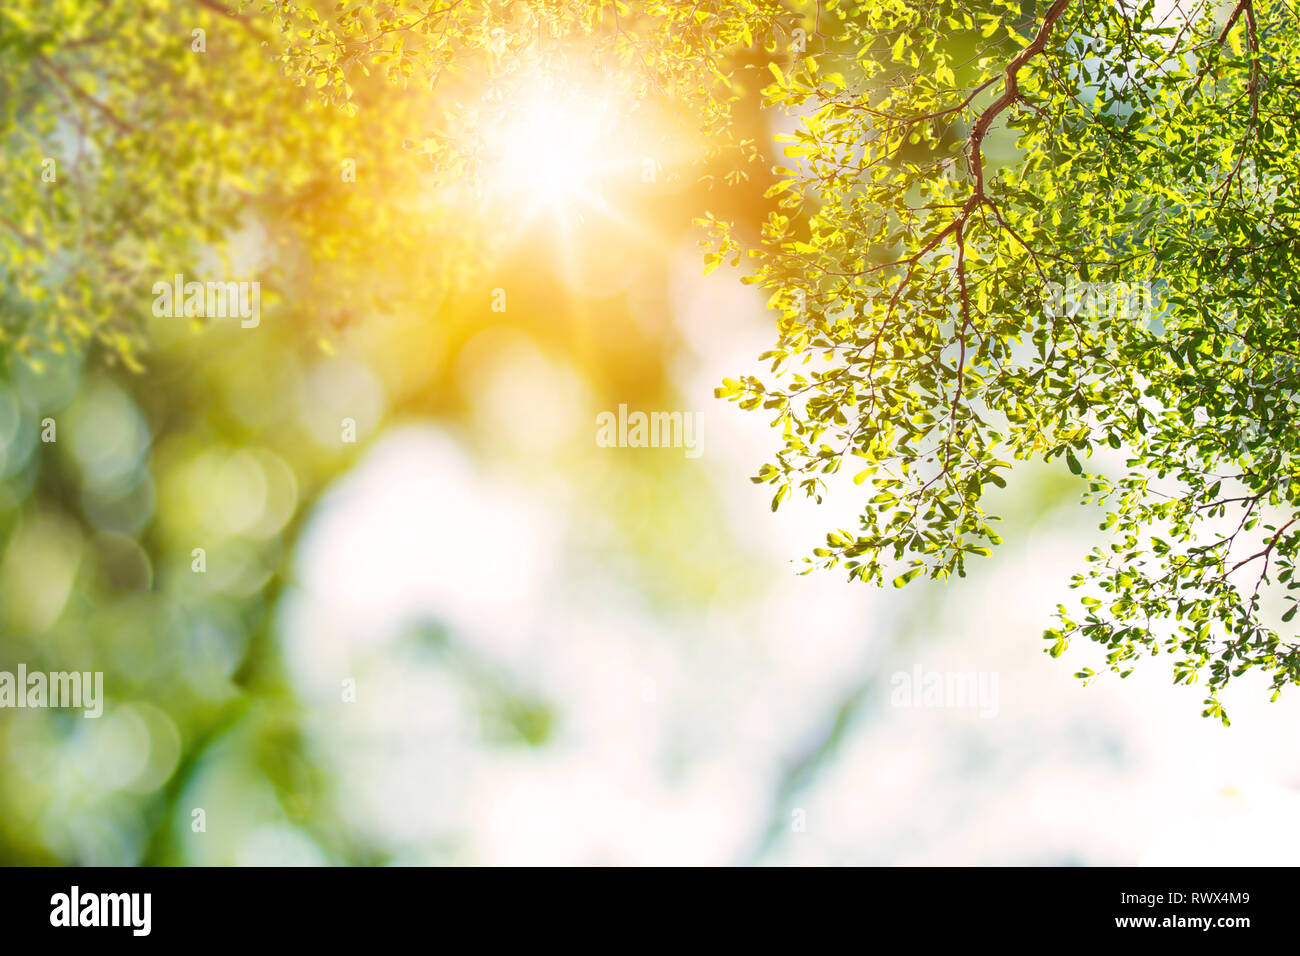 Green Nature Background With Sun Shine Stock Photo Alamy